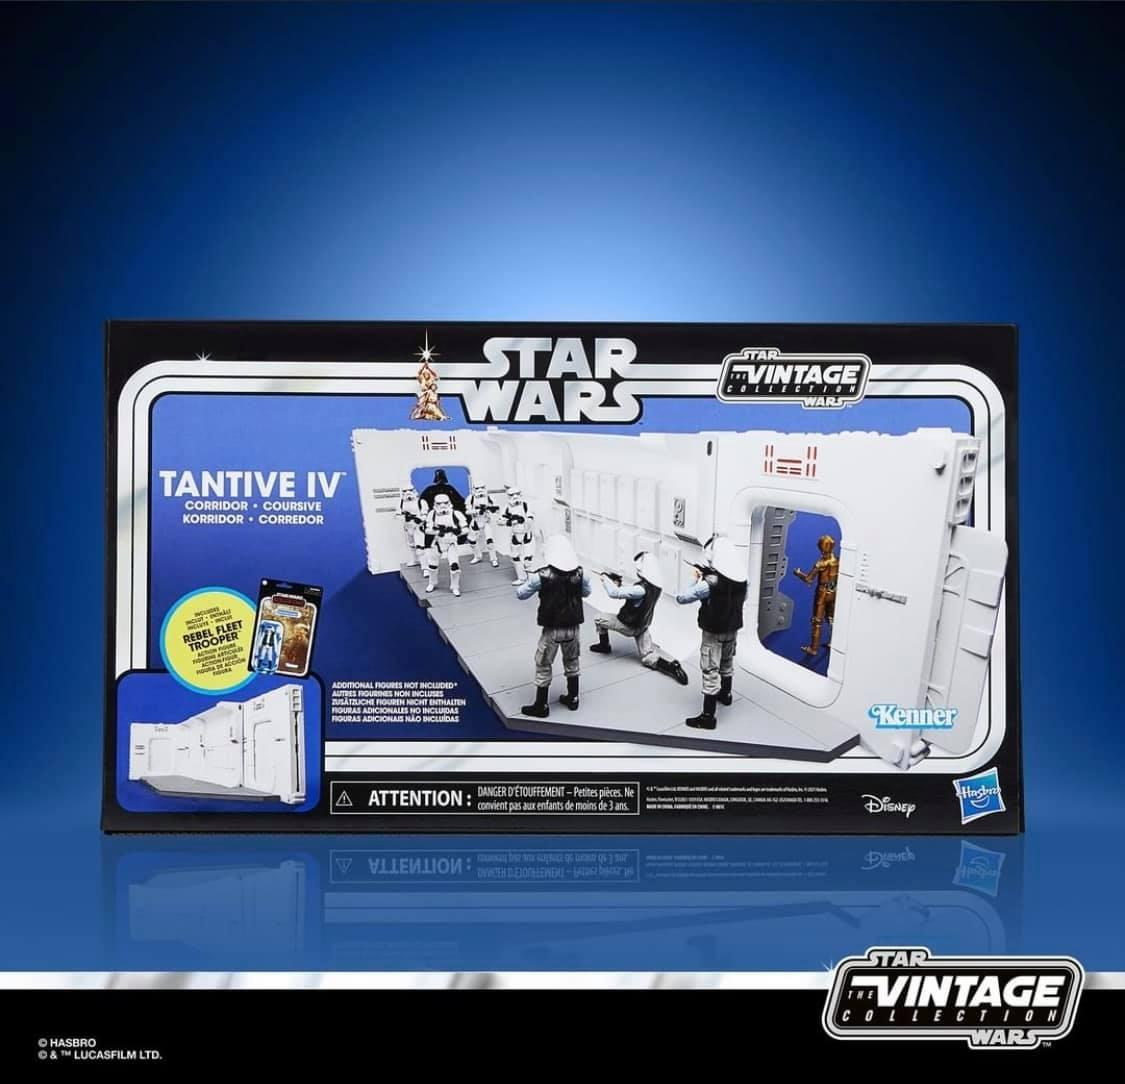 Boxed Images for the Tantive IV Playset